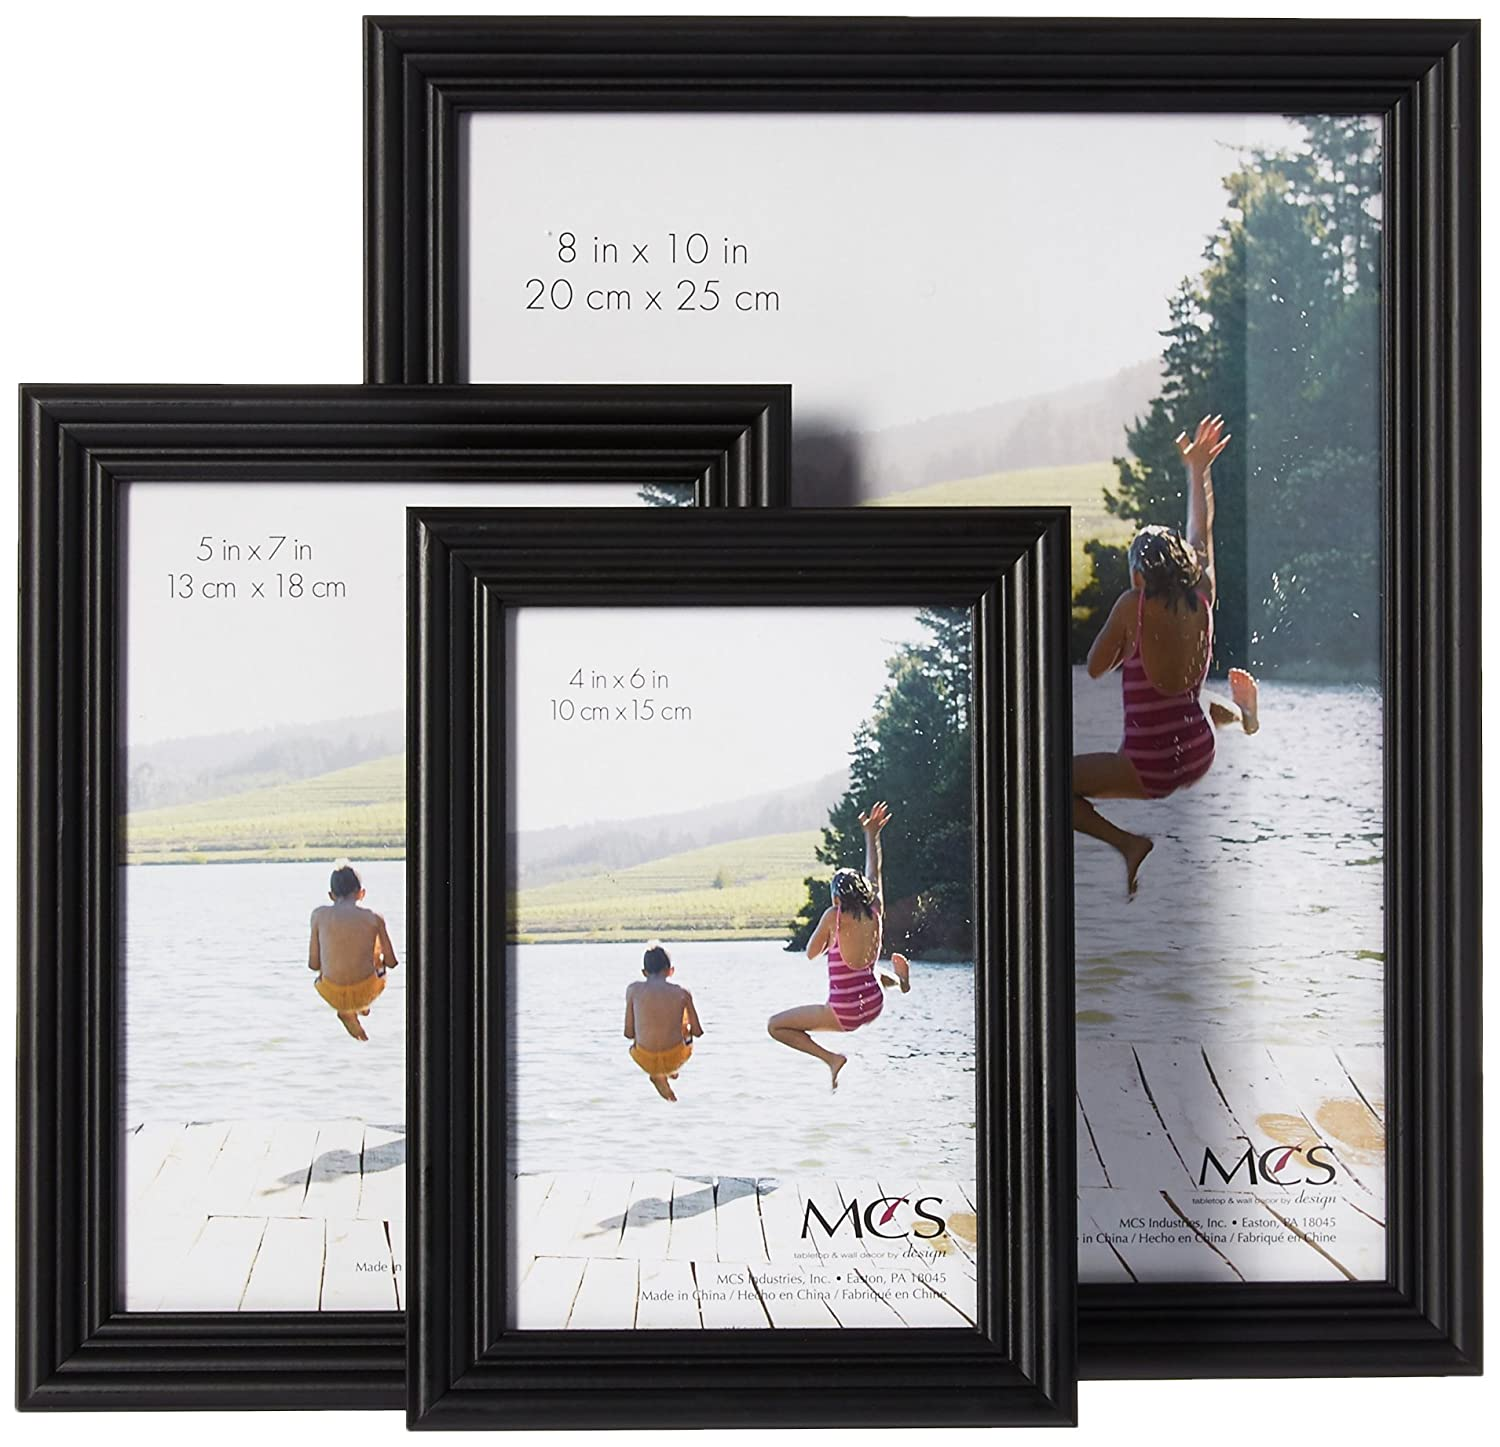 Amazon mcs 10pc multi pack picture frame value set two 8x10 amazon mcs 10pc multi pack picture frame value set two 8x10 in four 5x7 in four 4x6 in black 65508 home kitchen jeuxipadfo Images